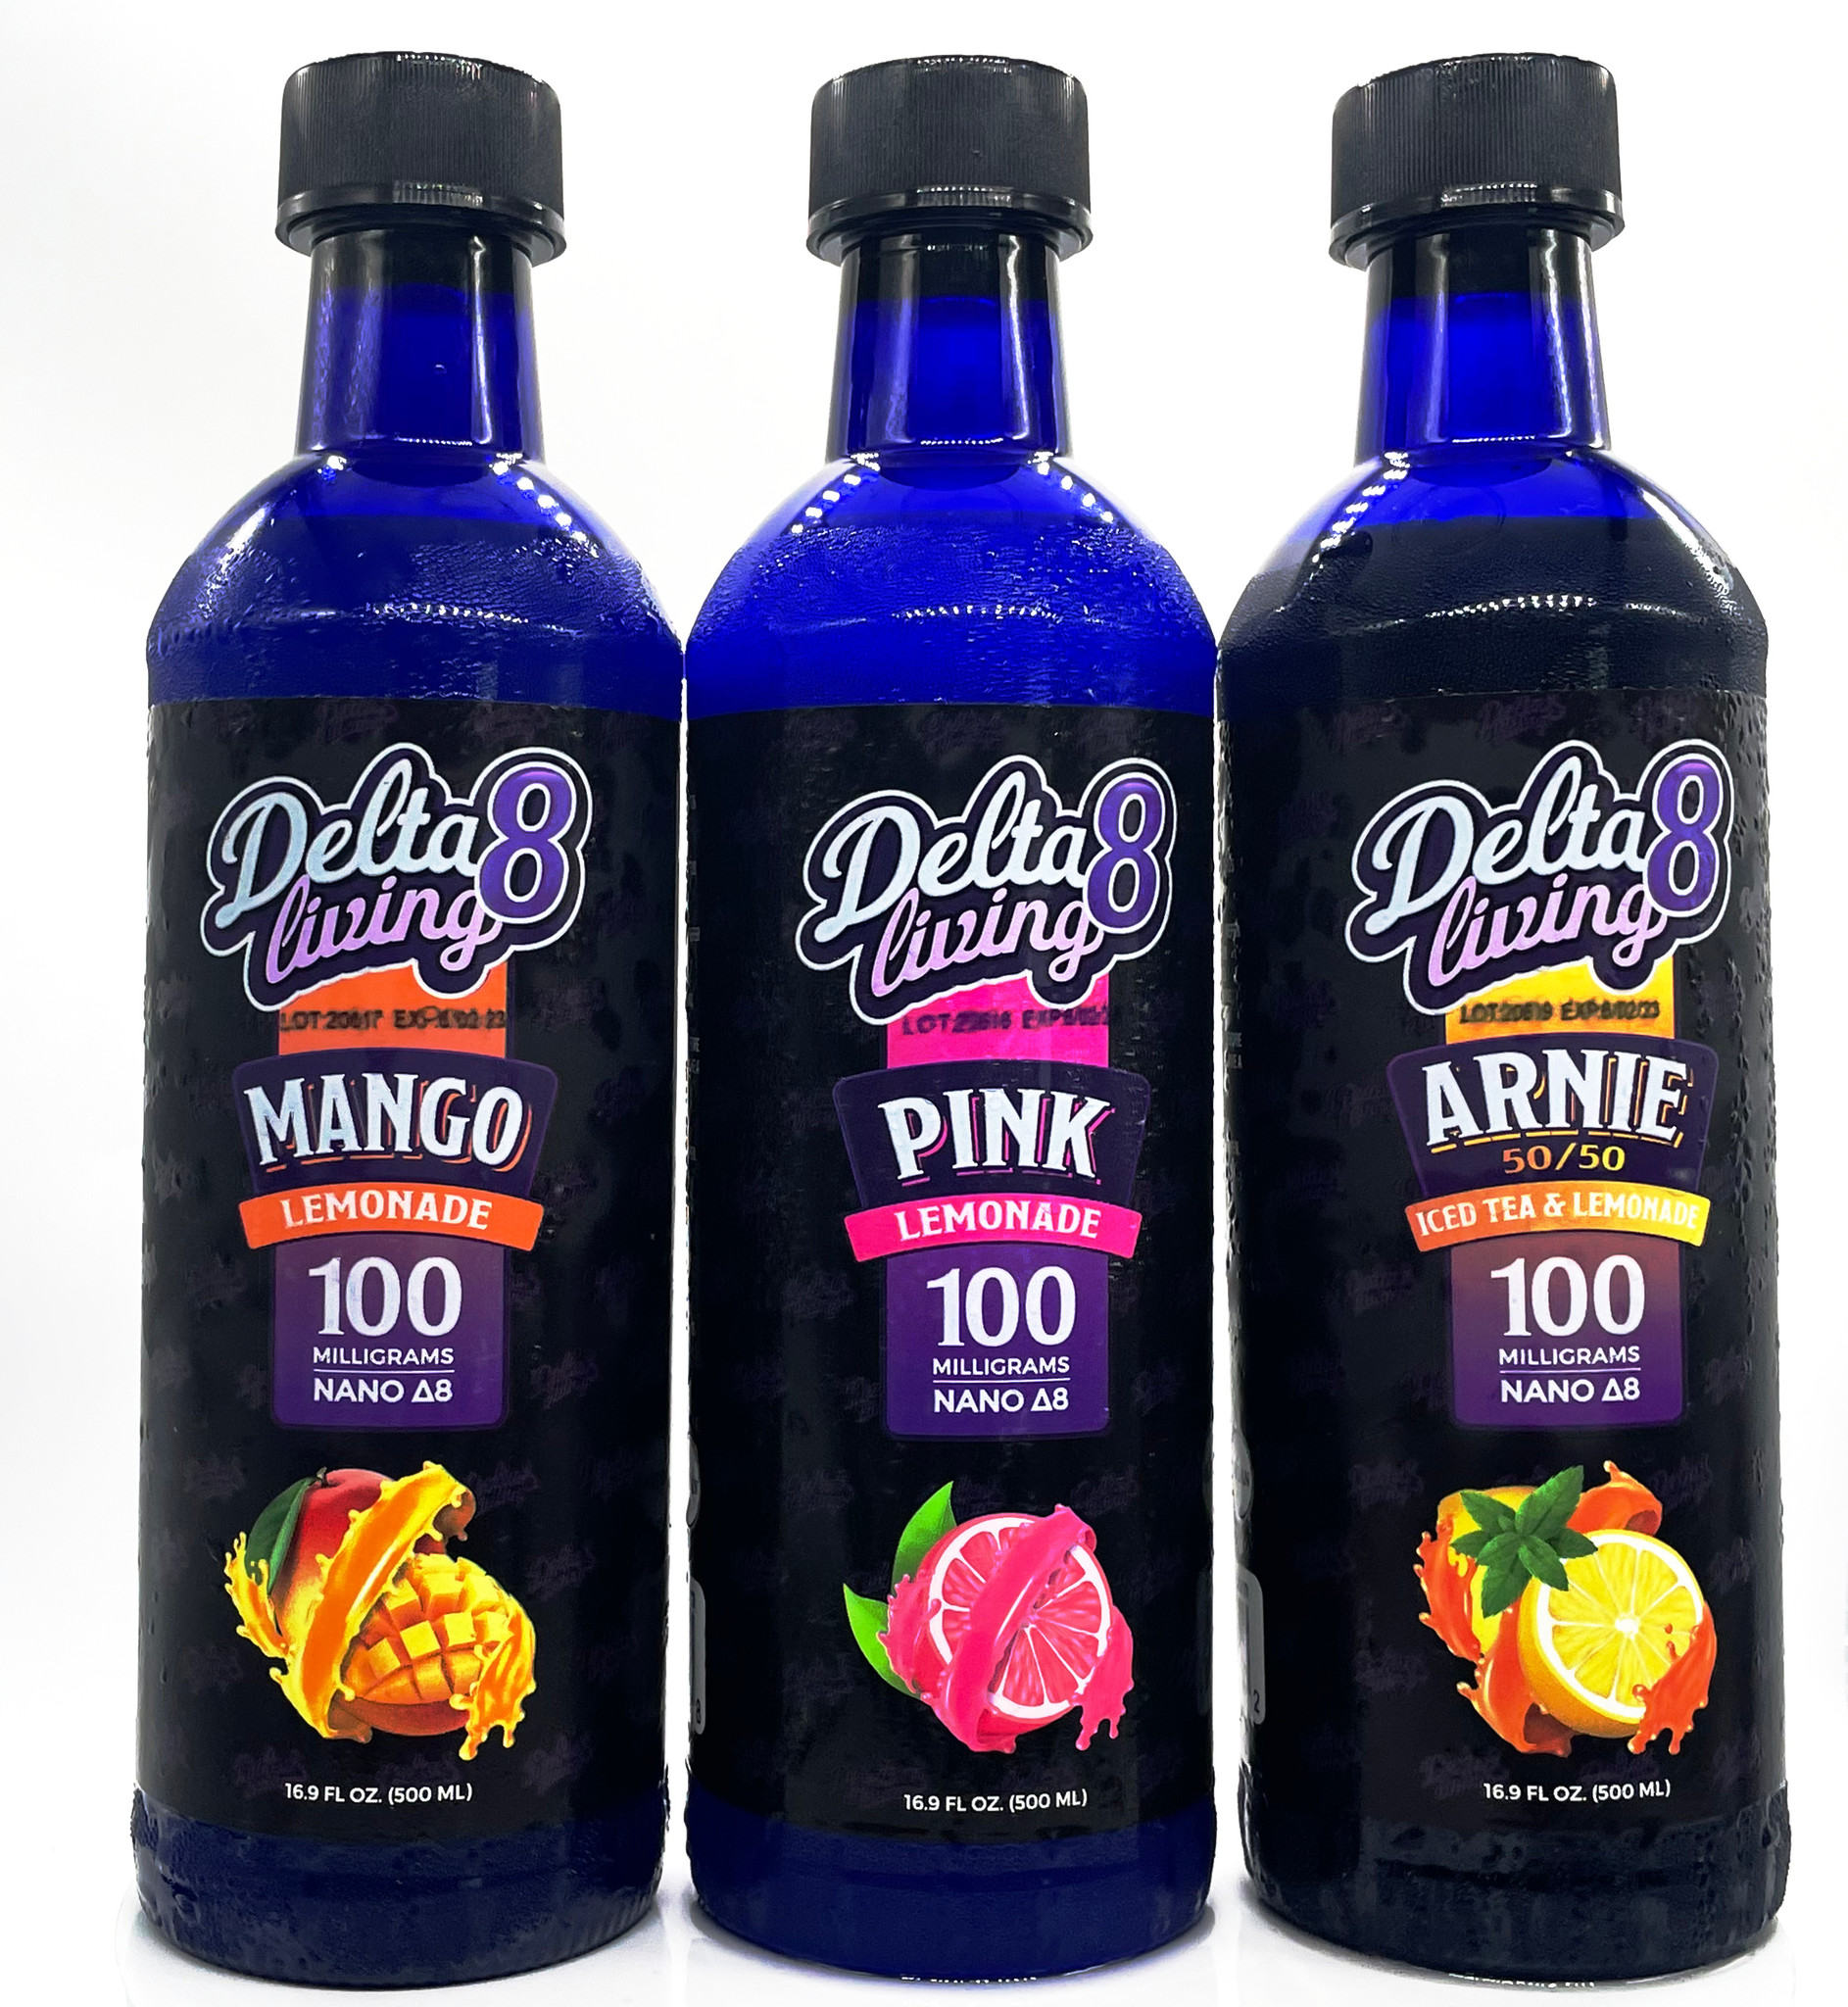 Delta 8 Products for Sale online and in-store Laurel 20707, MD